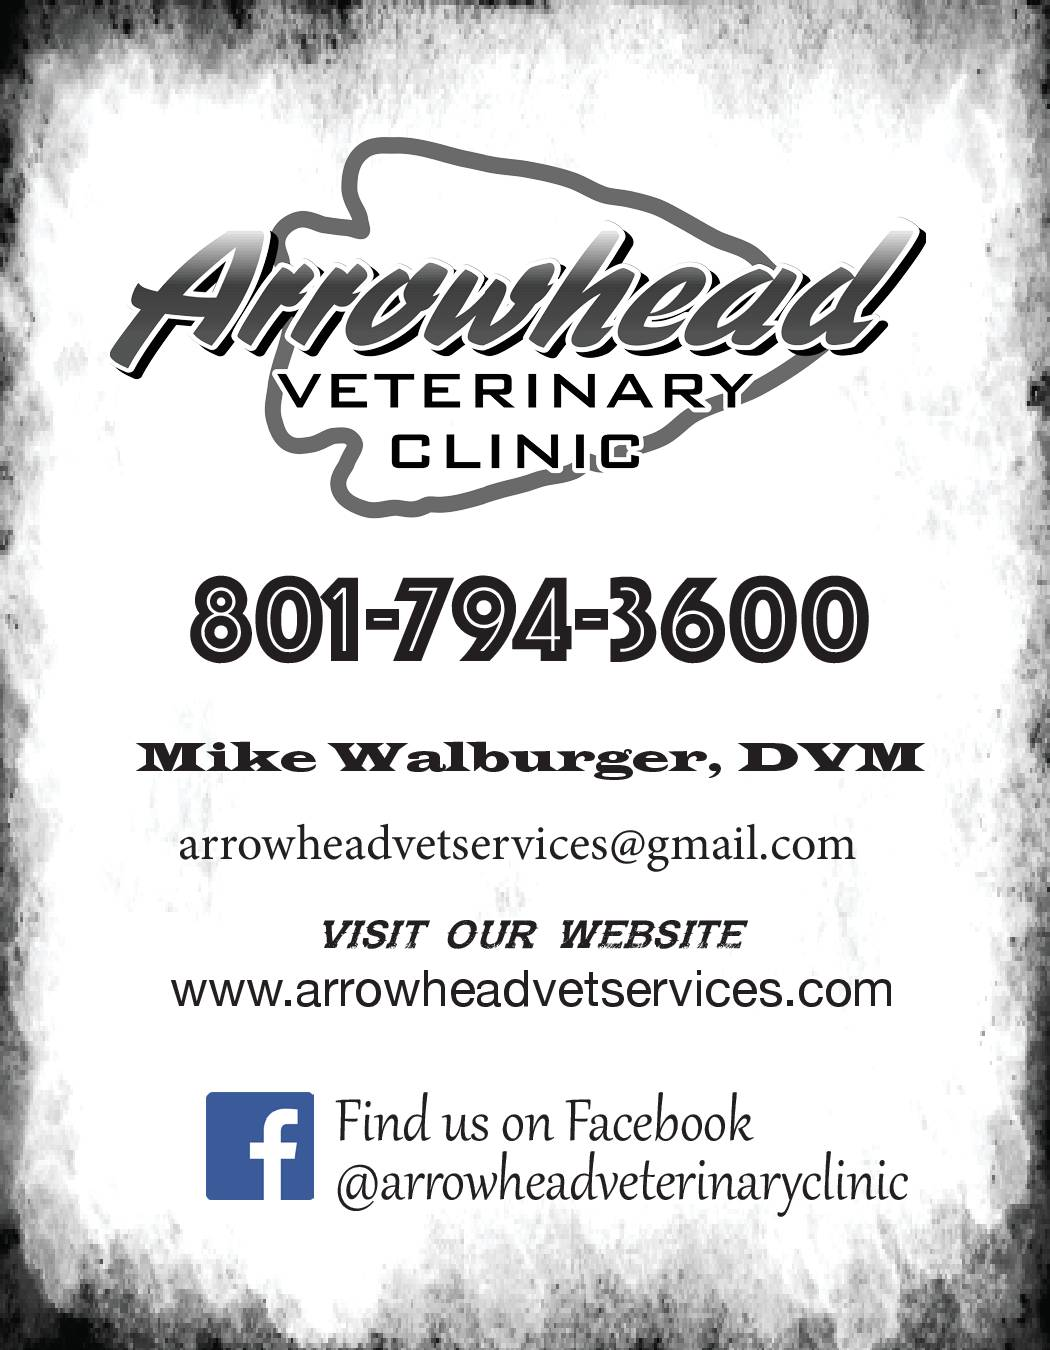 Arrowhead Veterinary Clinic